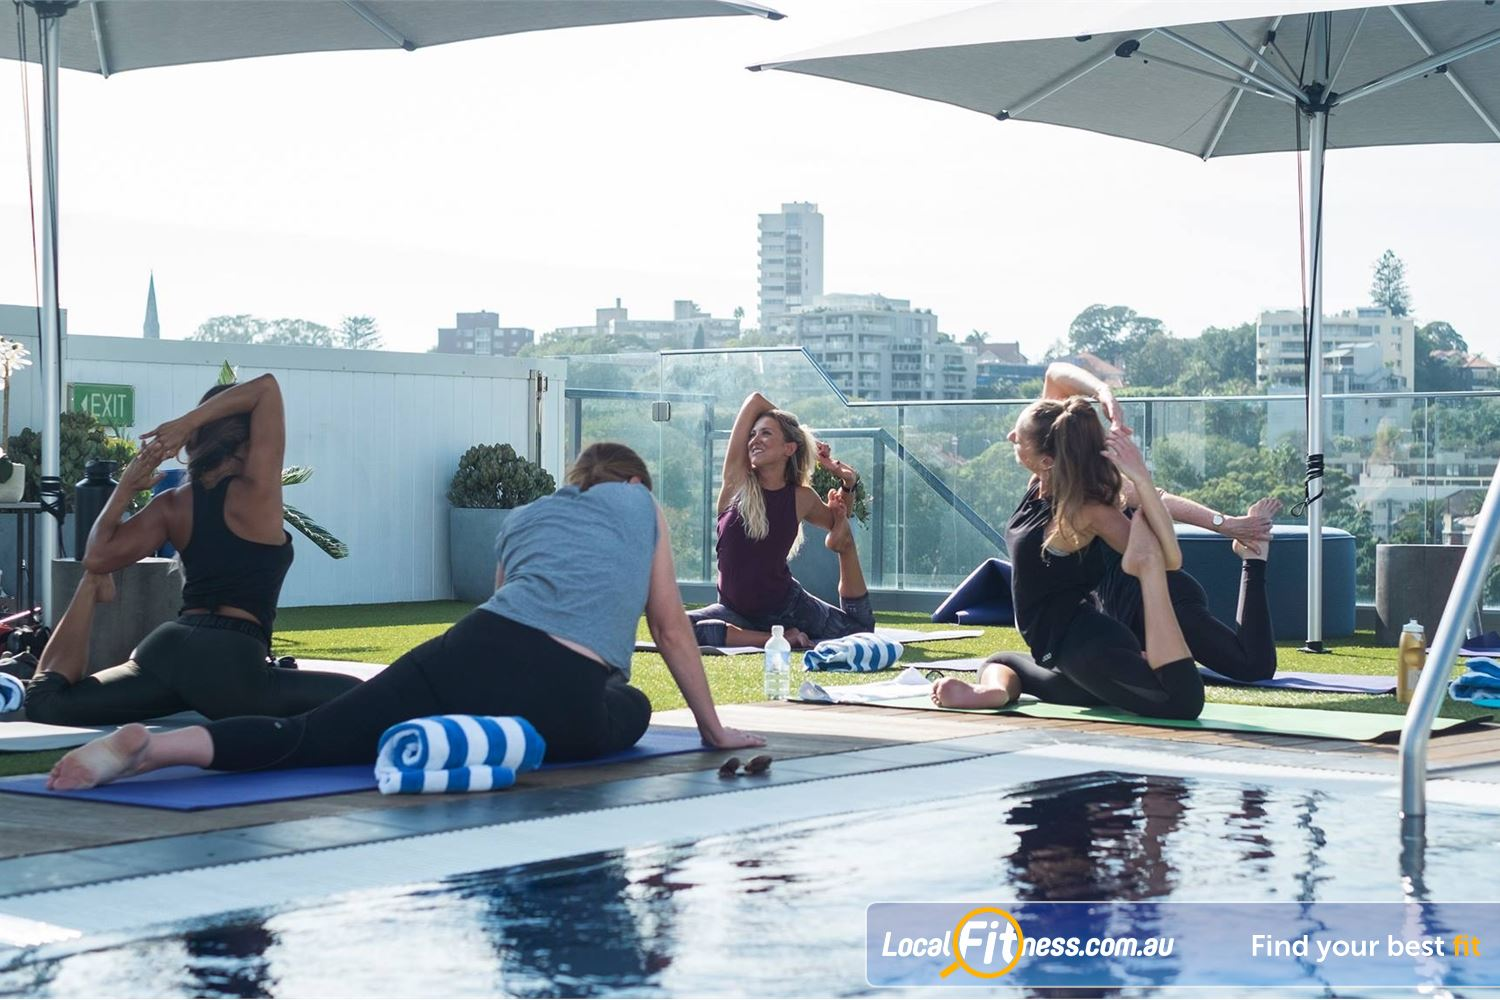 Rushcutters Health Near Paddington Our outdoor classes include Rushcutters Bay Yoga.